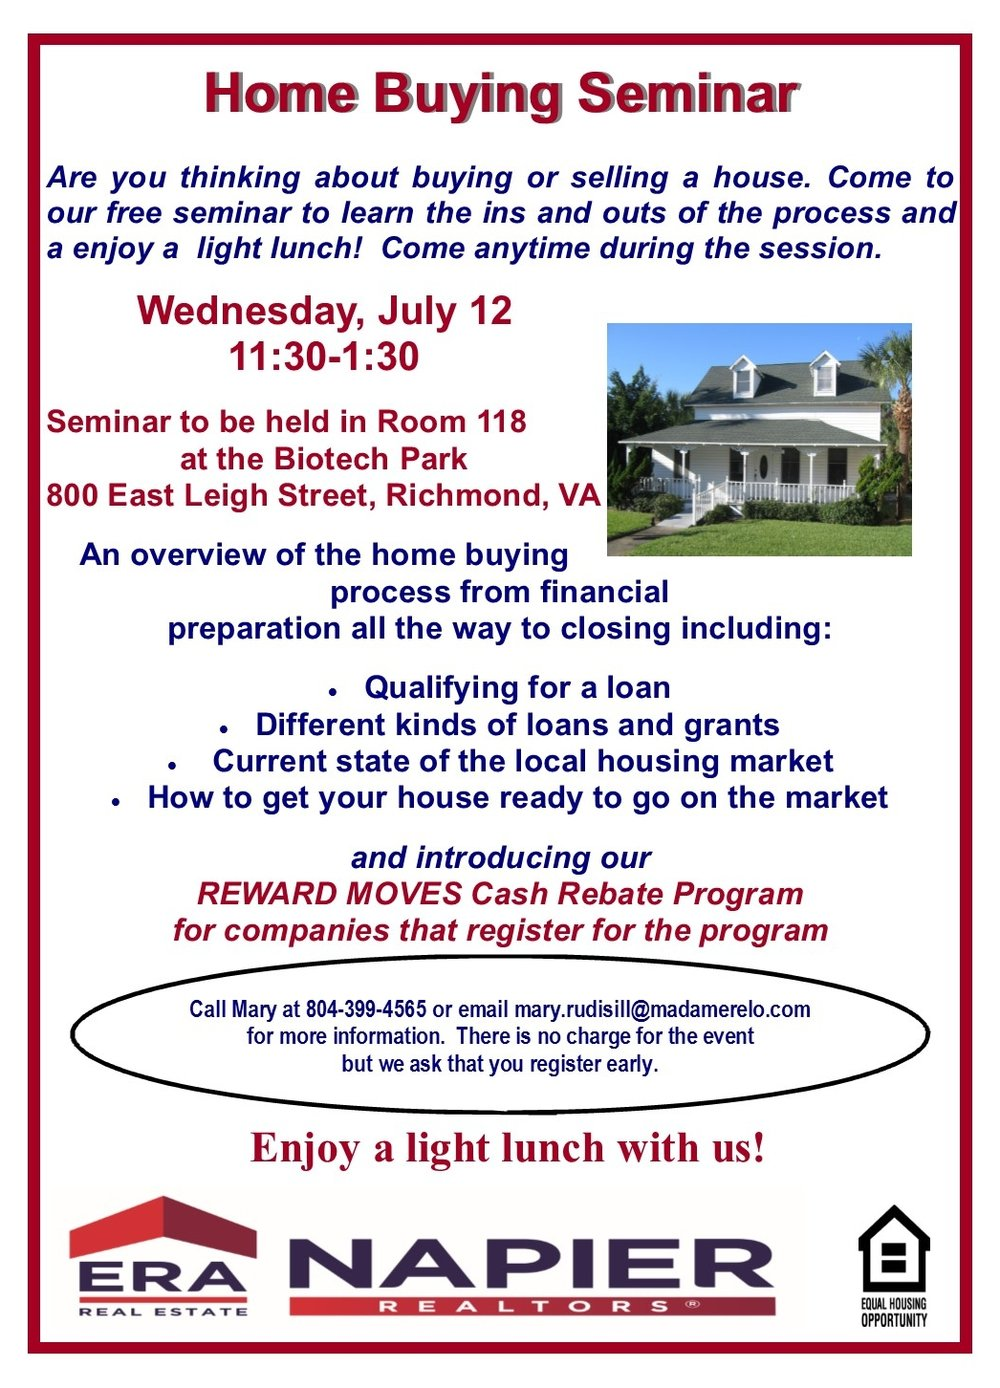 Home Buying Seminar BioTech